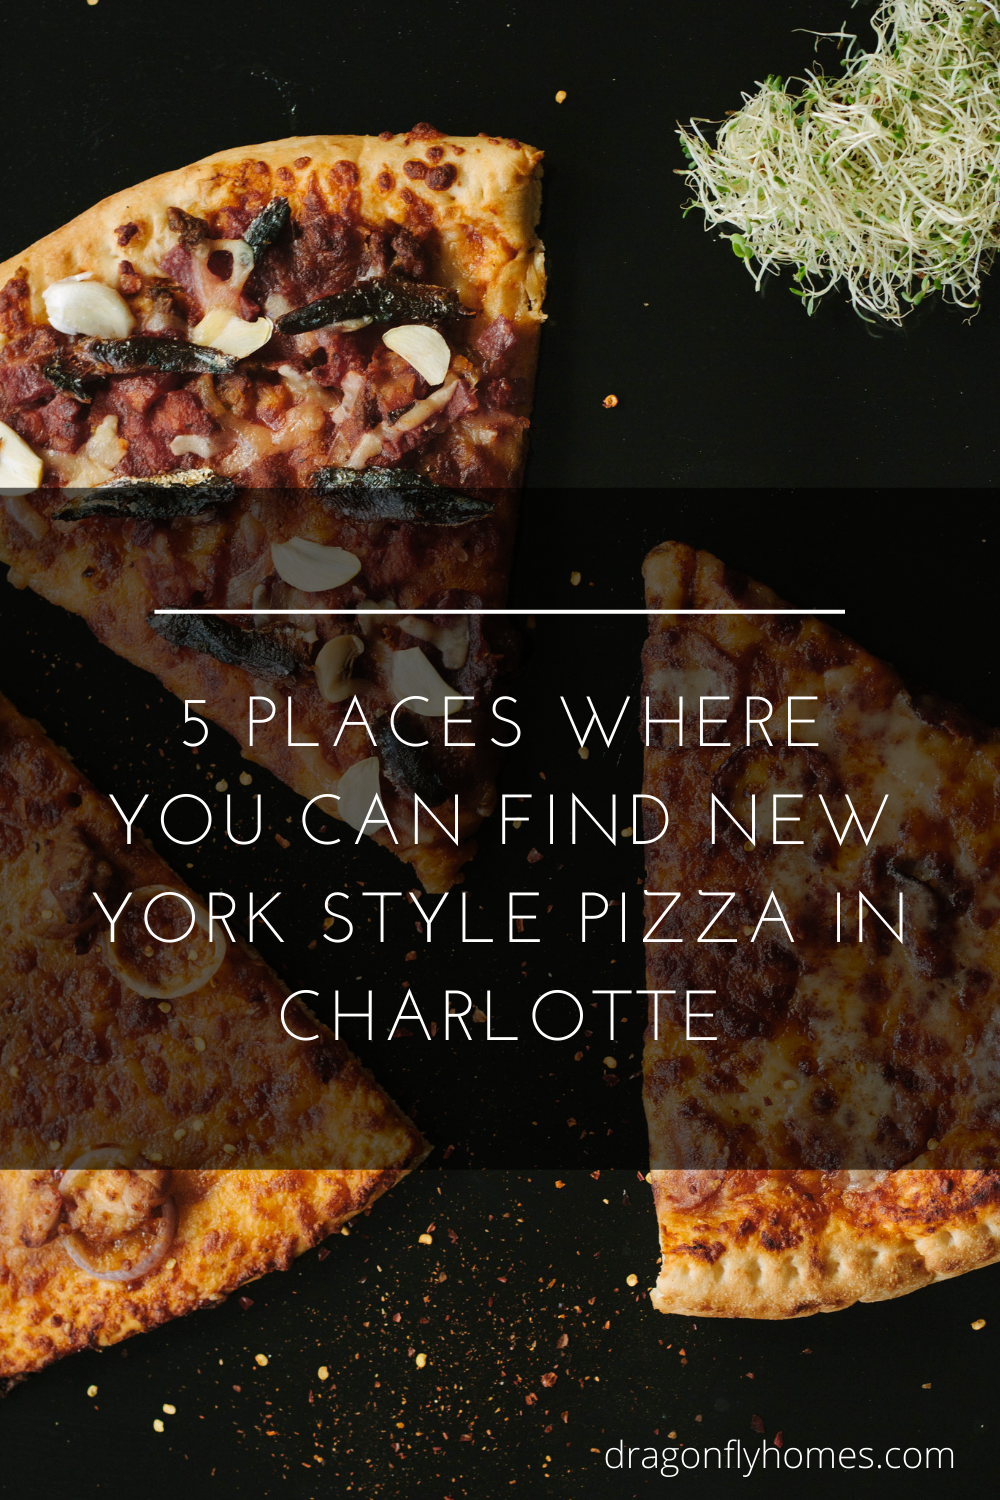 5 Places Where You Can Find New York Style Pizza in Charlotte